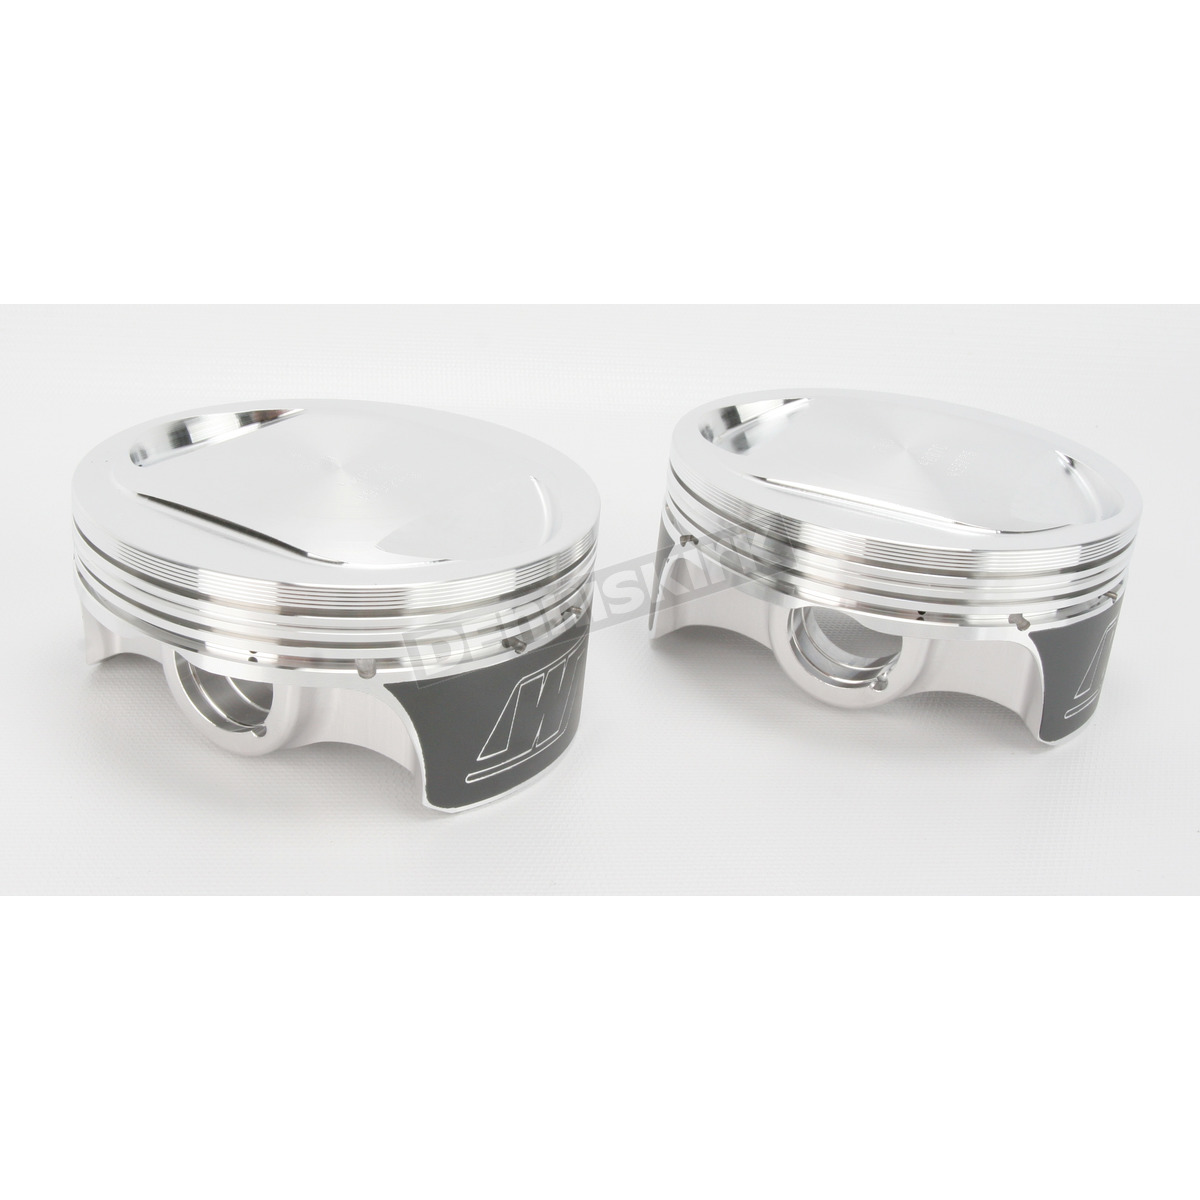 Wiseco K1615 3.517 Bore 7:1 Compression Ratio Domed Forged Piston Kit